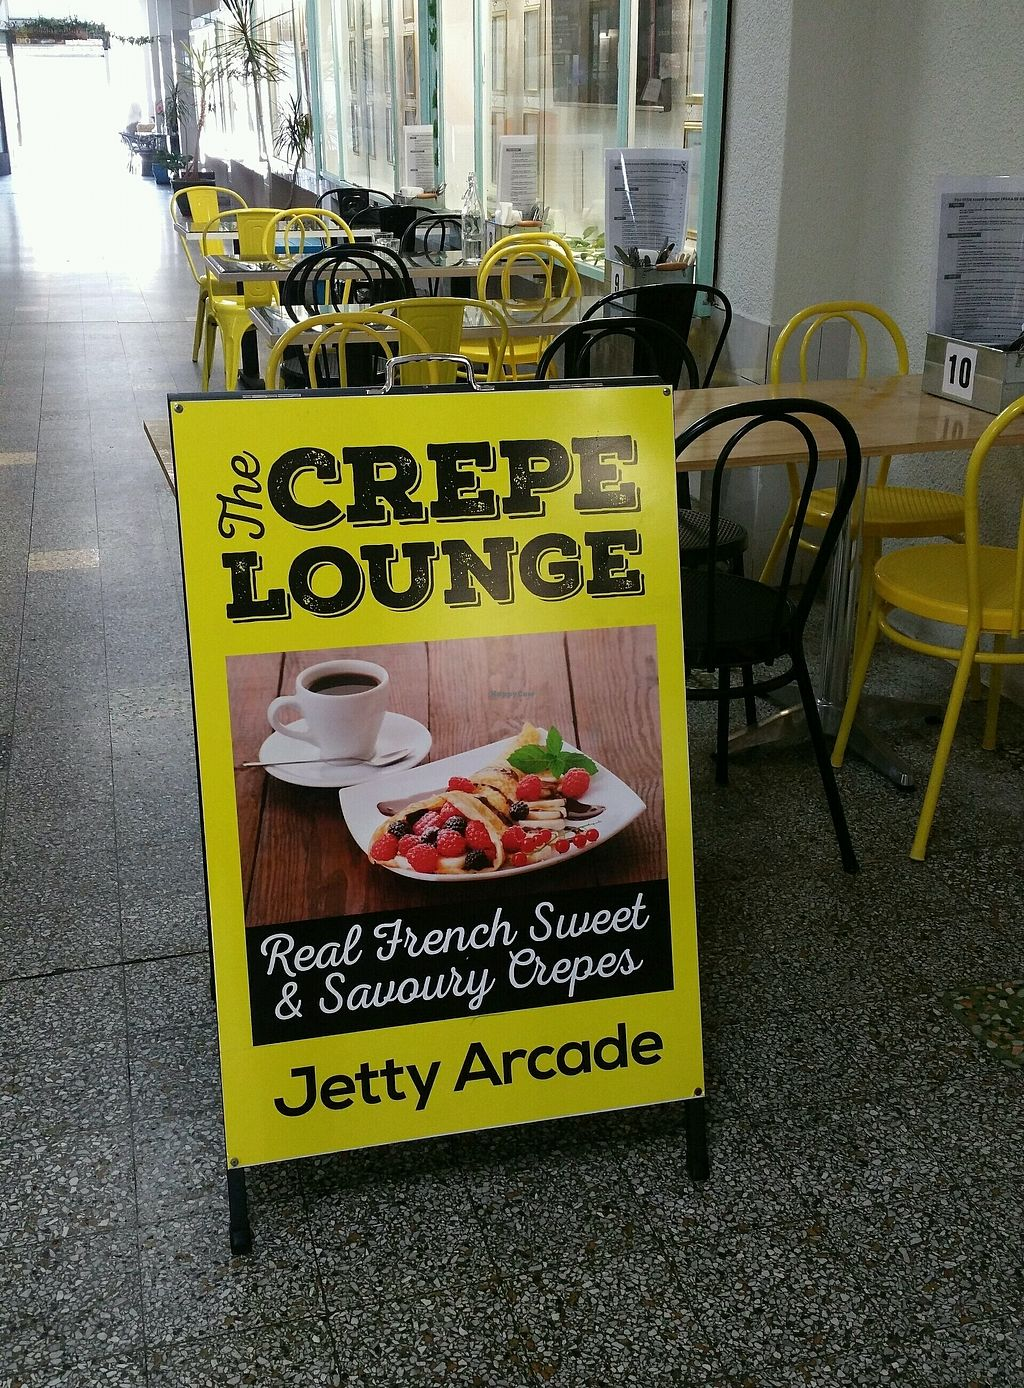 """Photo of The Little Crepe Lounge  by <a href=""""/members/profile/Mike%20Munsie"""">Mike Munsie</a> <br/>arcade seating <br/> January 30, 2018  - <a href='/contact/abuse/image/109387/352603'>Report</a>"""